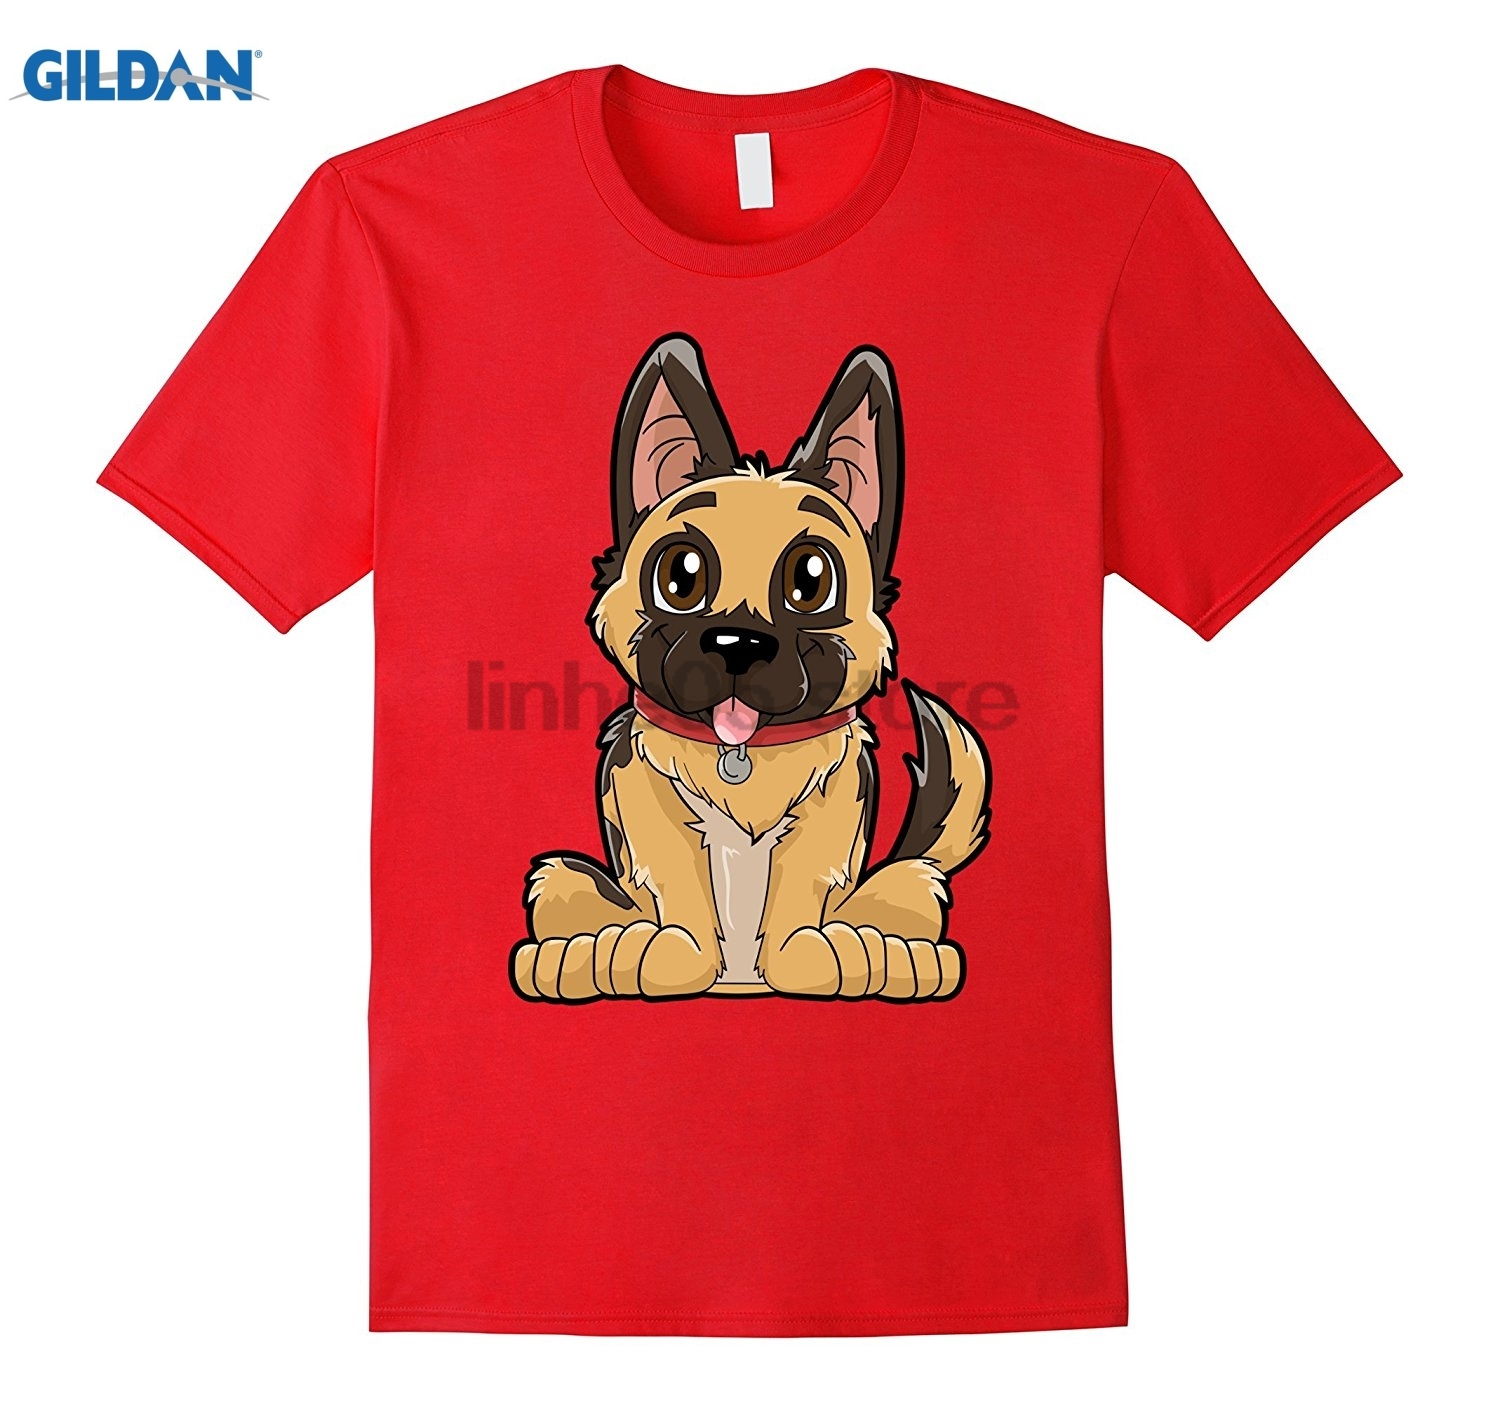 GILDAN German Shepherd Cute Puppy T Shirt Funny Dog Puppies Gift Dress female T-shirt